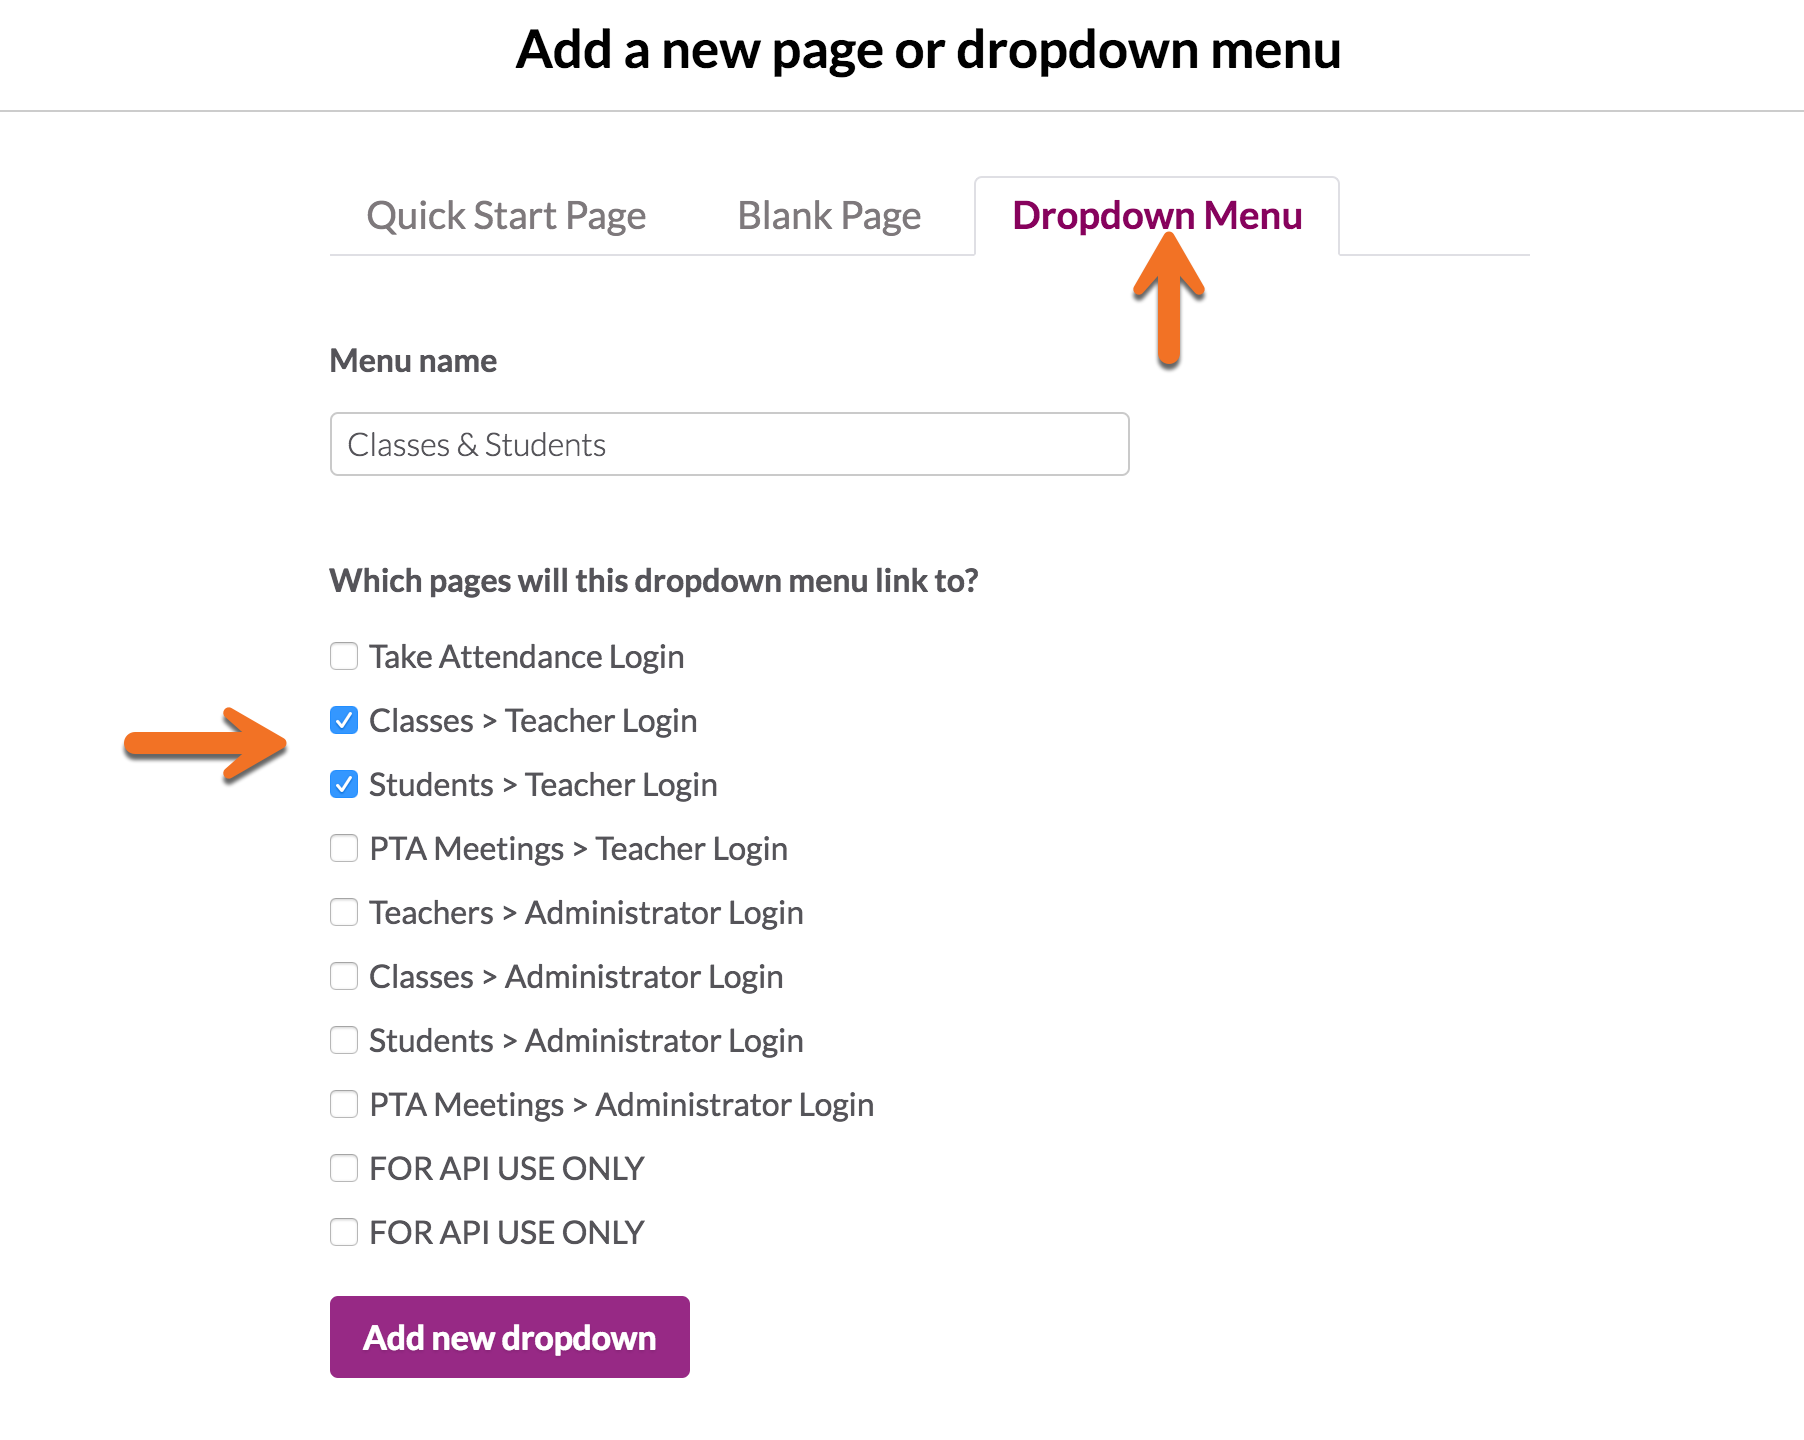 Introducing Dropdown Menus - Knack Blog